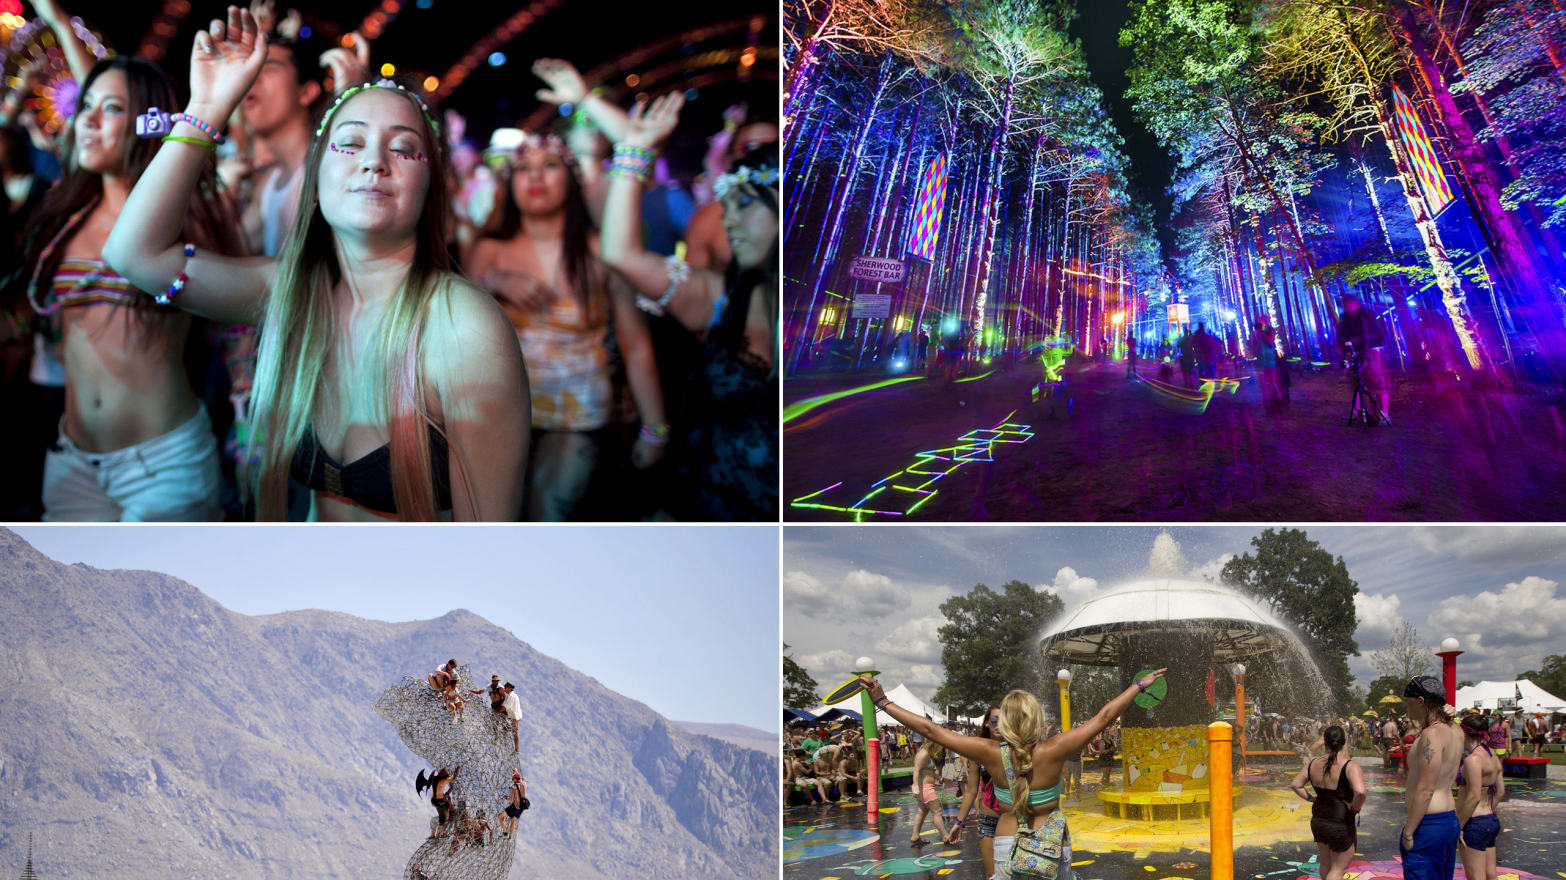 18 Best U.S. Summer Music Festivals: From Bonnaroo to EDC (PHOTOS)